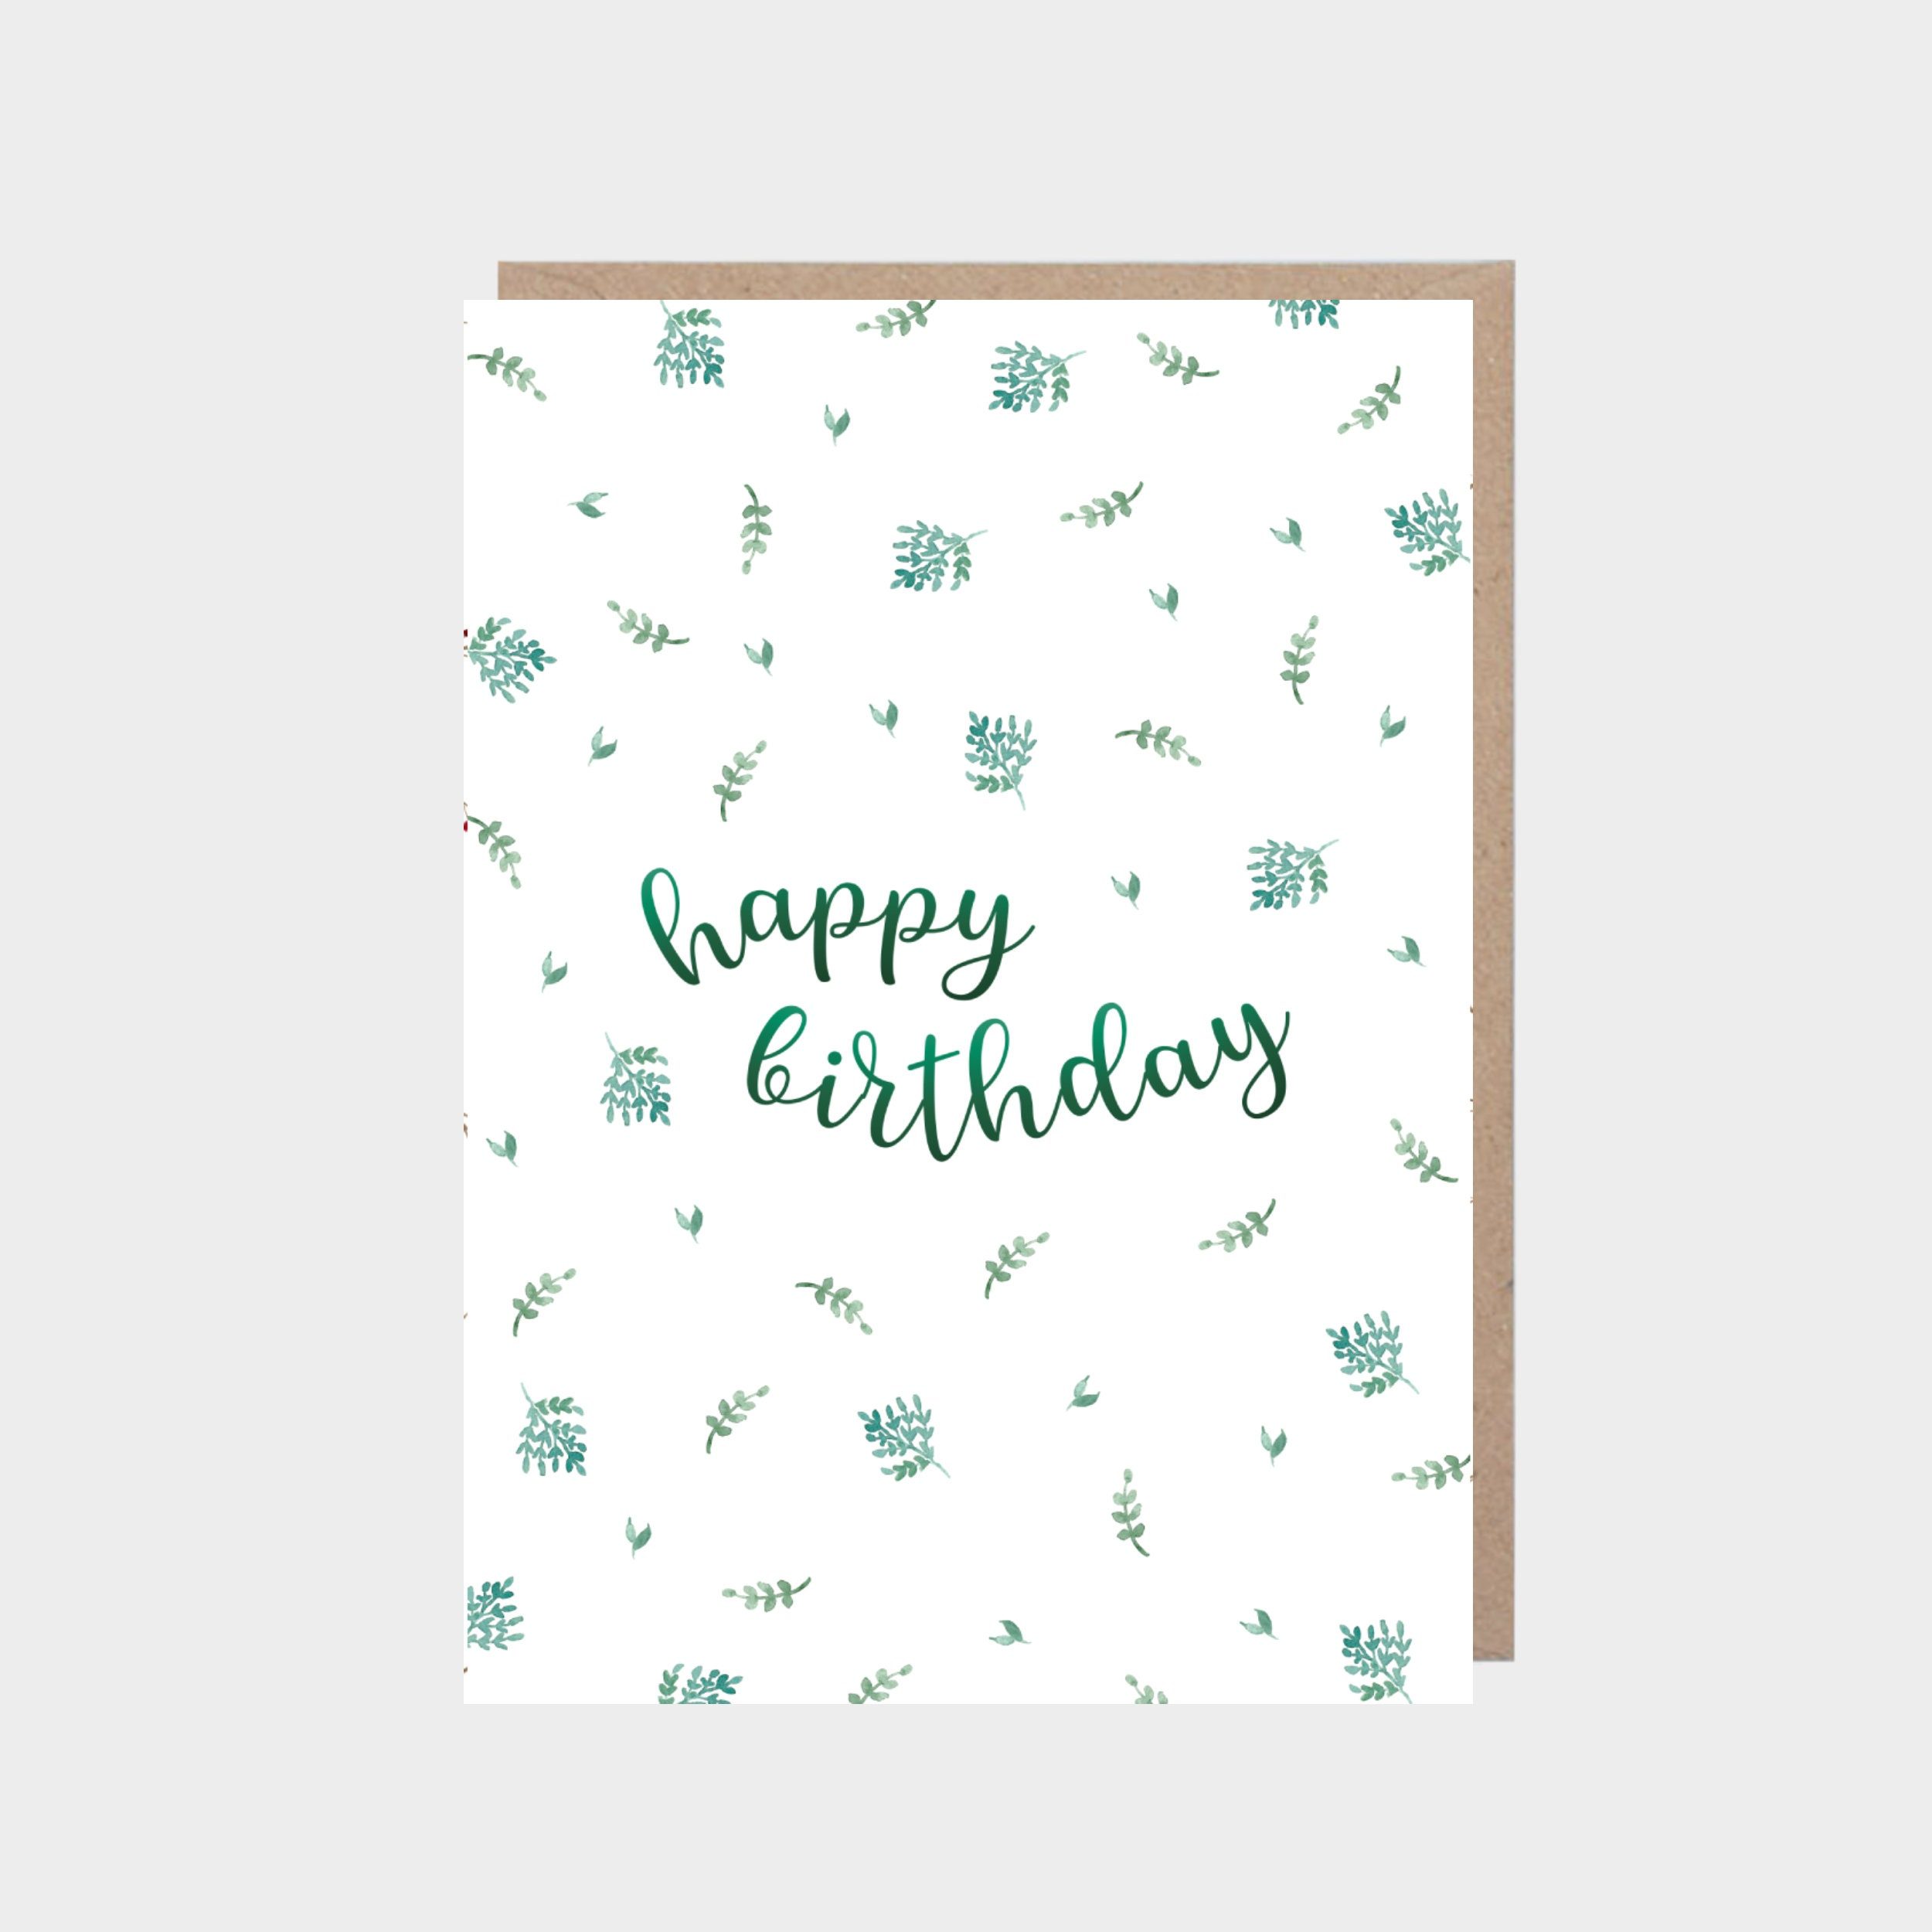 White card with a green leafy pattern, with a brown kraft envelope.